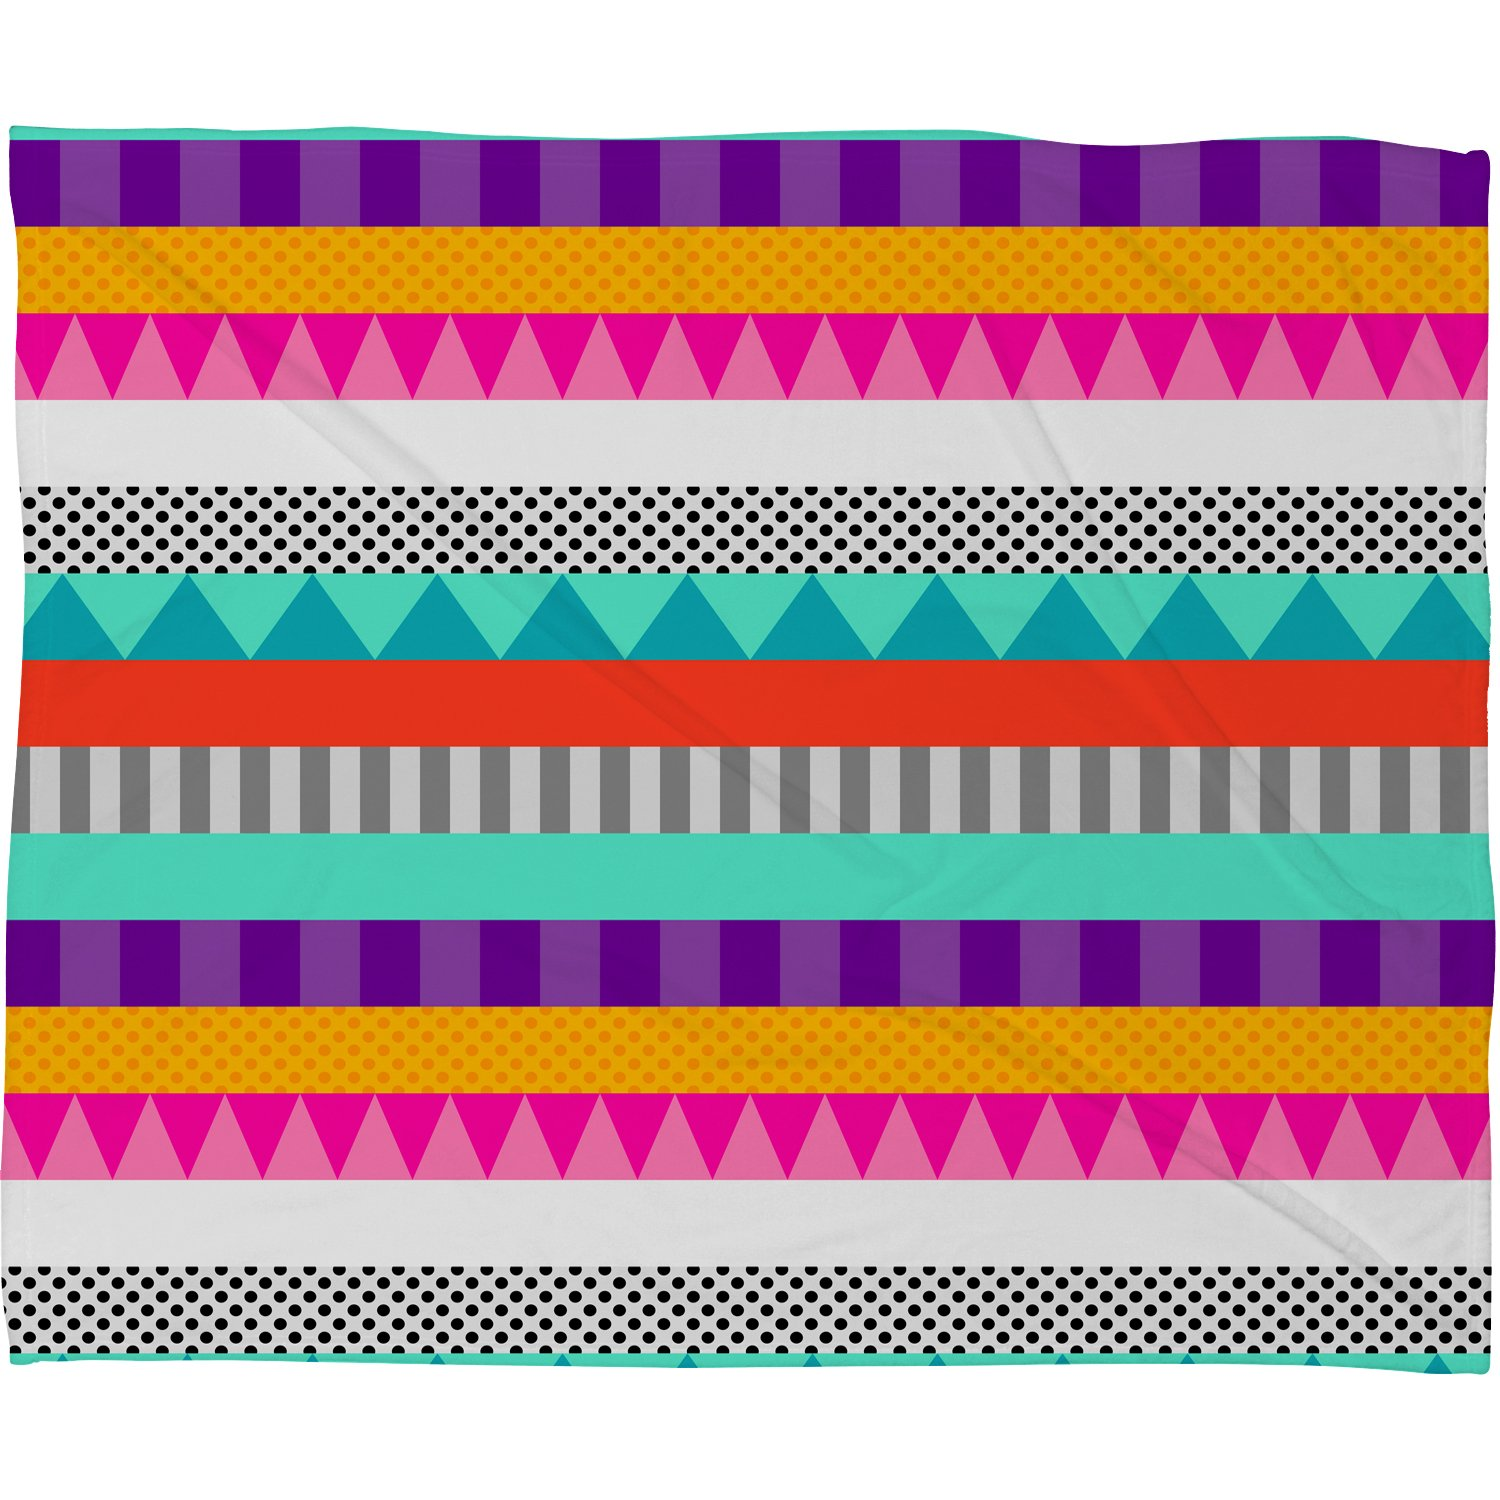 Deny Designs Elisabeth Fredriksson Happy Stripes 2 Fleece Throw Blanket 60 x 80